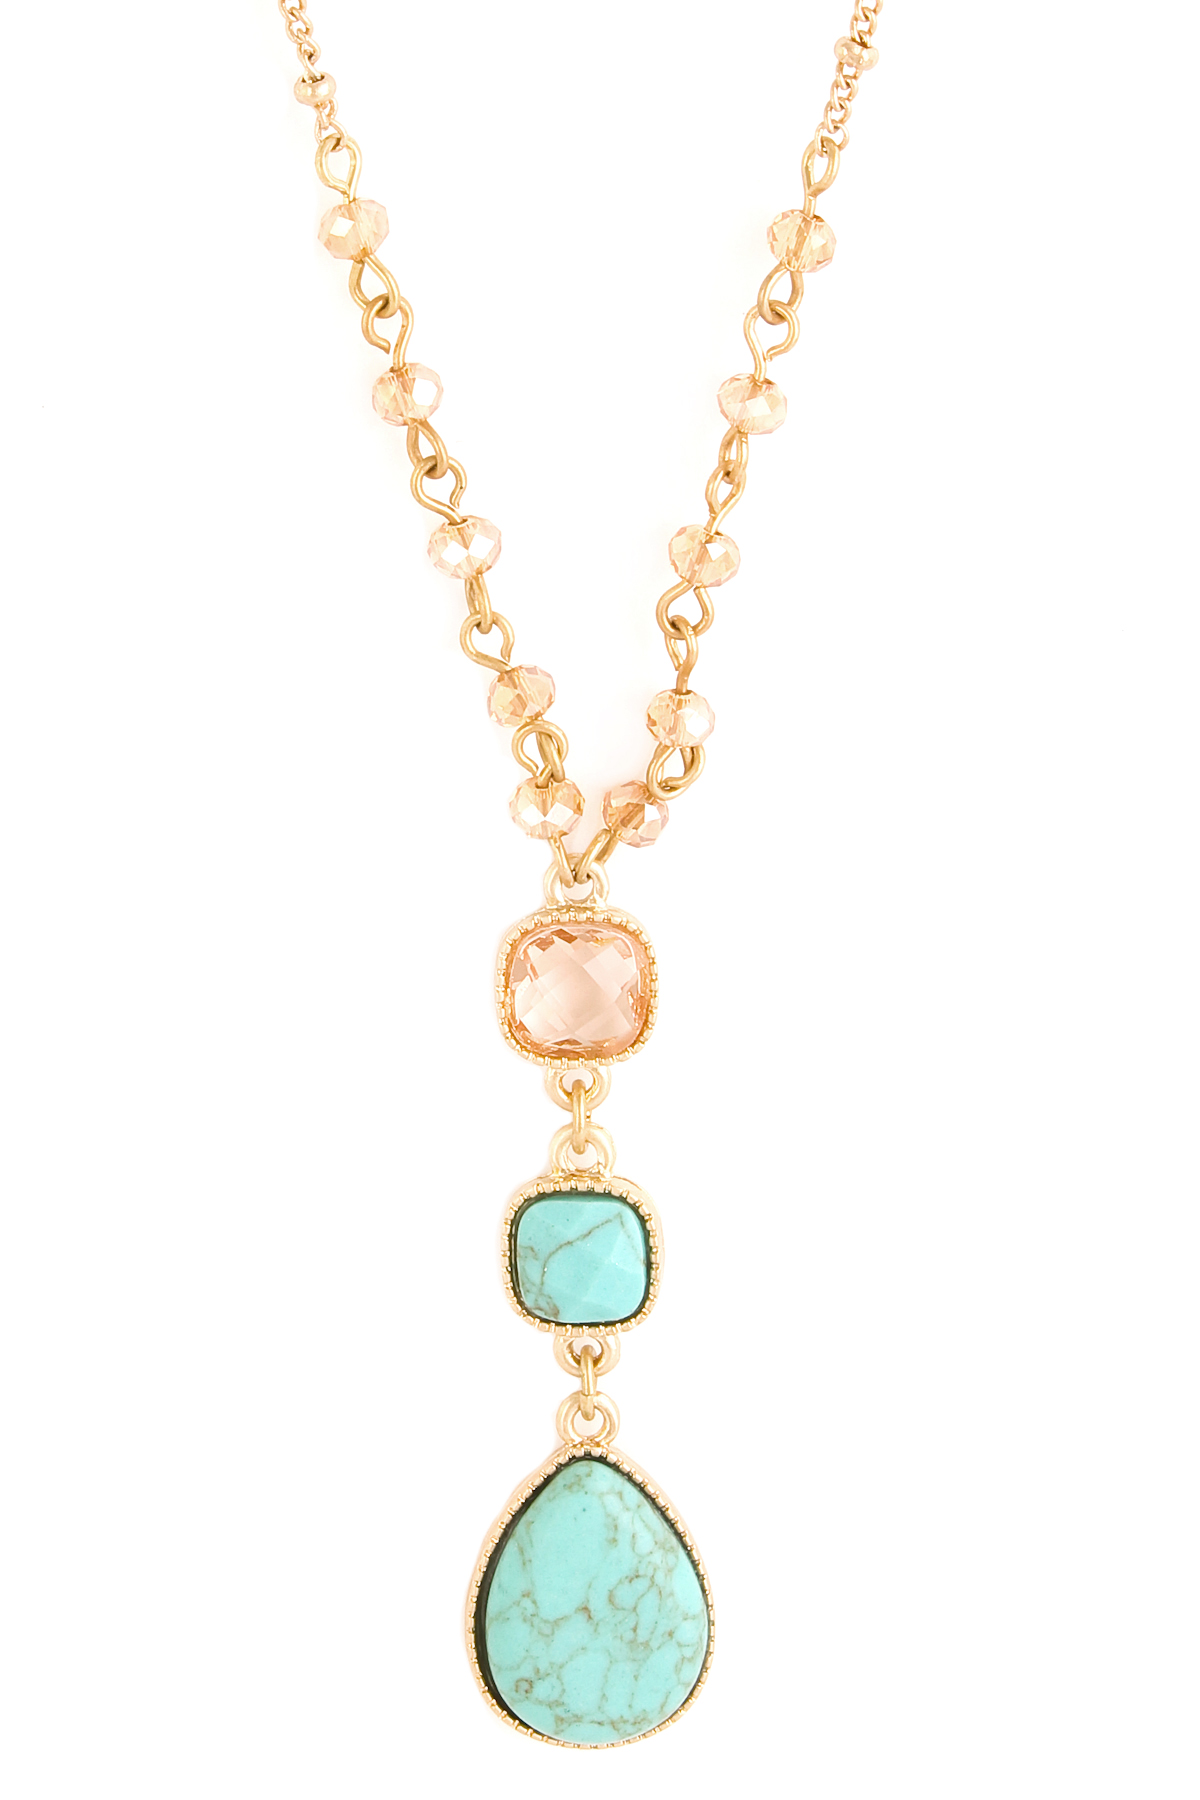 Glass Bead Teardrop Long Necklace Necklaces